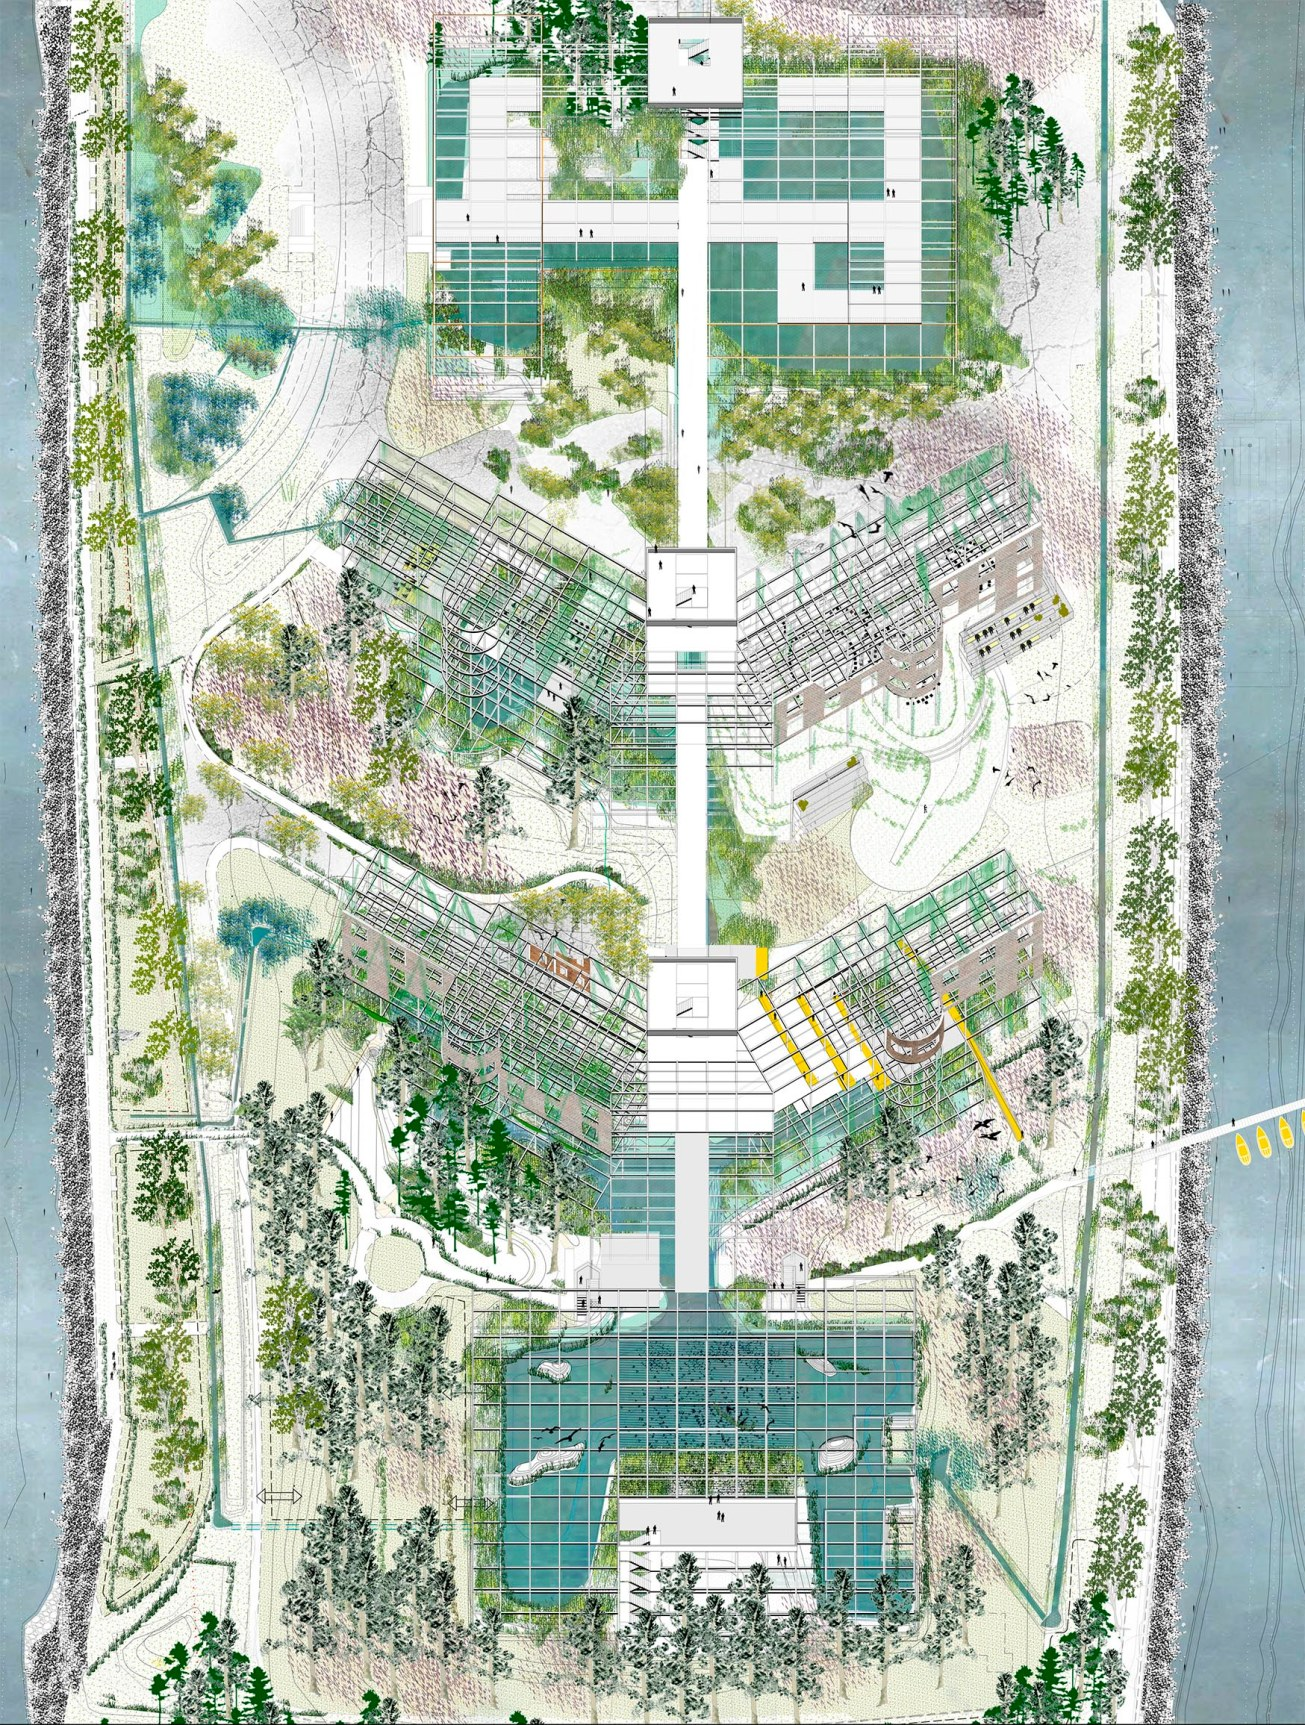 PLAN_Roosevelt Island, management of the future ruins as landscape in motion, Laura Huerga, Final thesis project